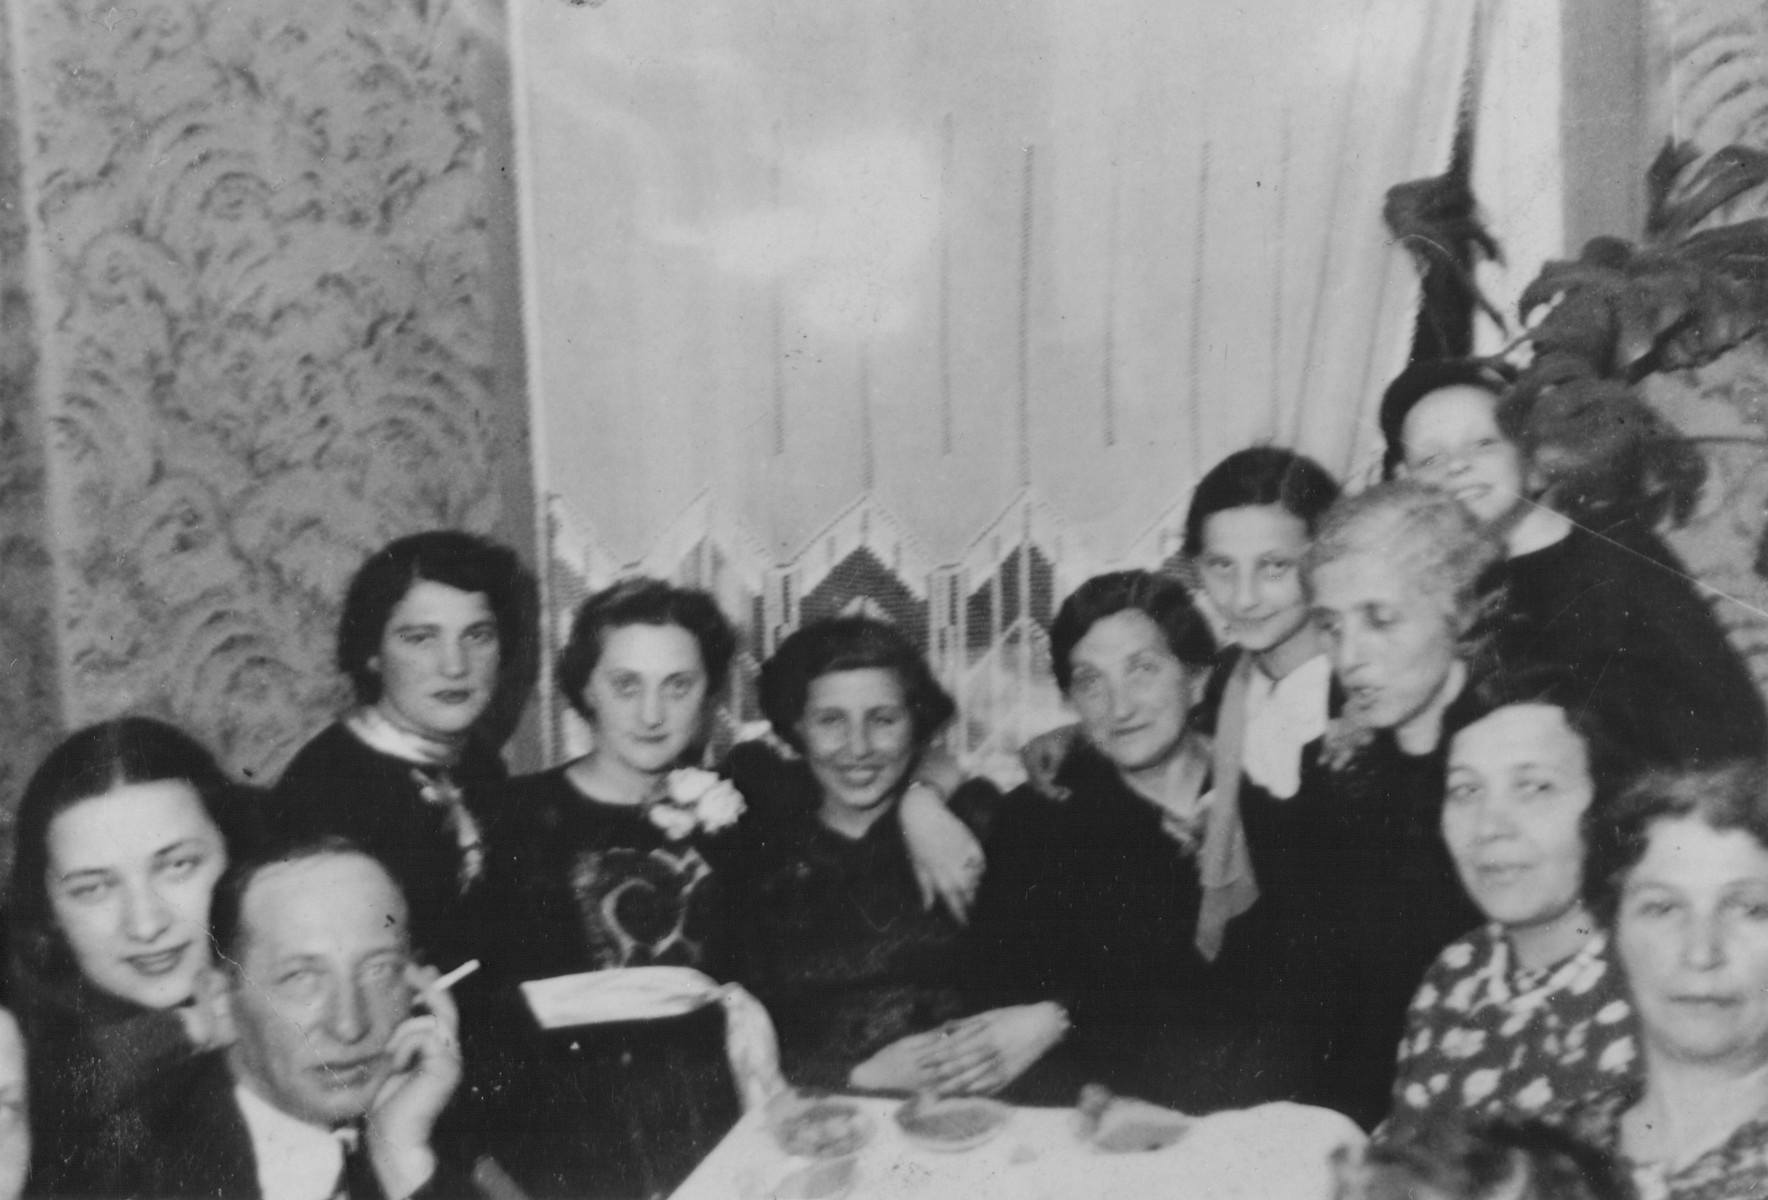 Members of the Fefer and Sztajman families at a gathering in the Fefer home in Lublin to celebrate the engagement (Tenayim) of Majer Sztajman and Sylka Fefer.  Pictured (left to right:) are the donor's uncle, Blima Fefer, Rachela Fefer, Fela Sztajman, bride Sylka Fefer, Mother of groom Sura Sztajman, Ruth Sztajman, mother of bride Chawa Fefer, Jerachmyel, and two of the donor's aunts.